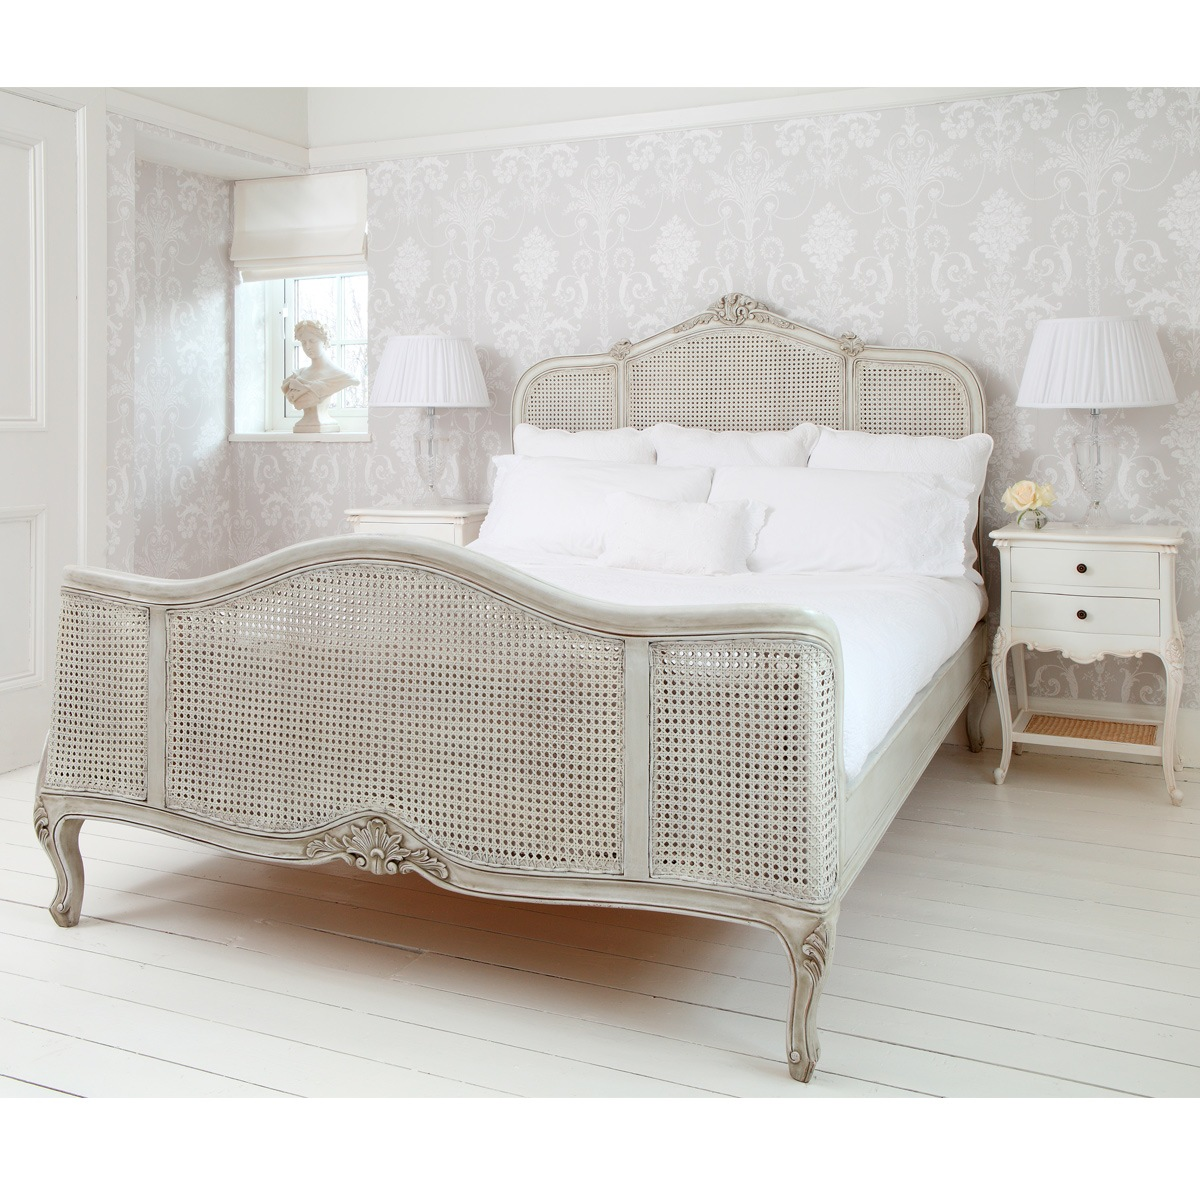 Bedroom wicker bedroom furniture for Bedroom furniture beds